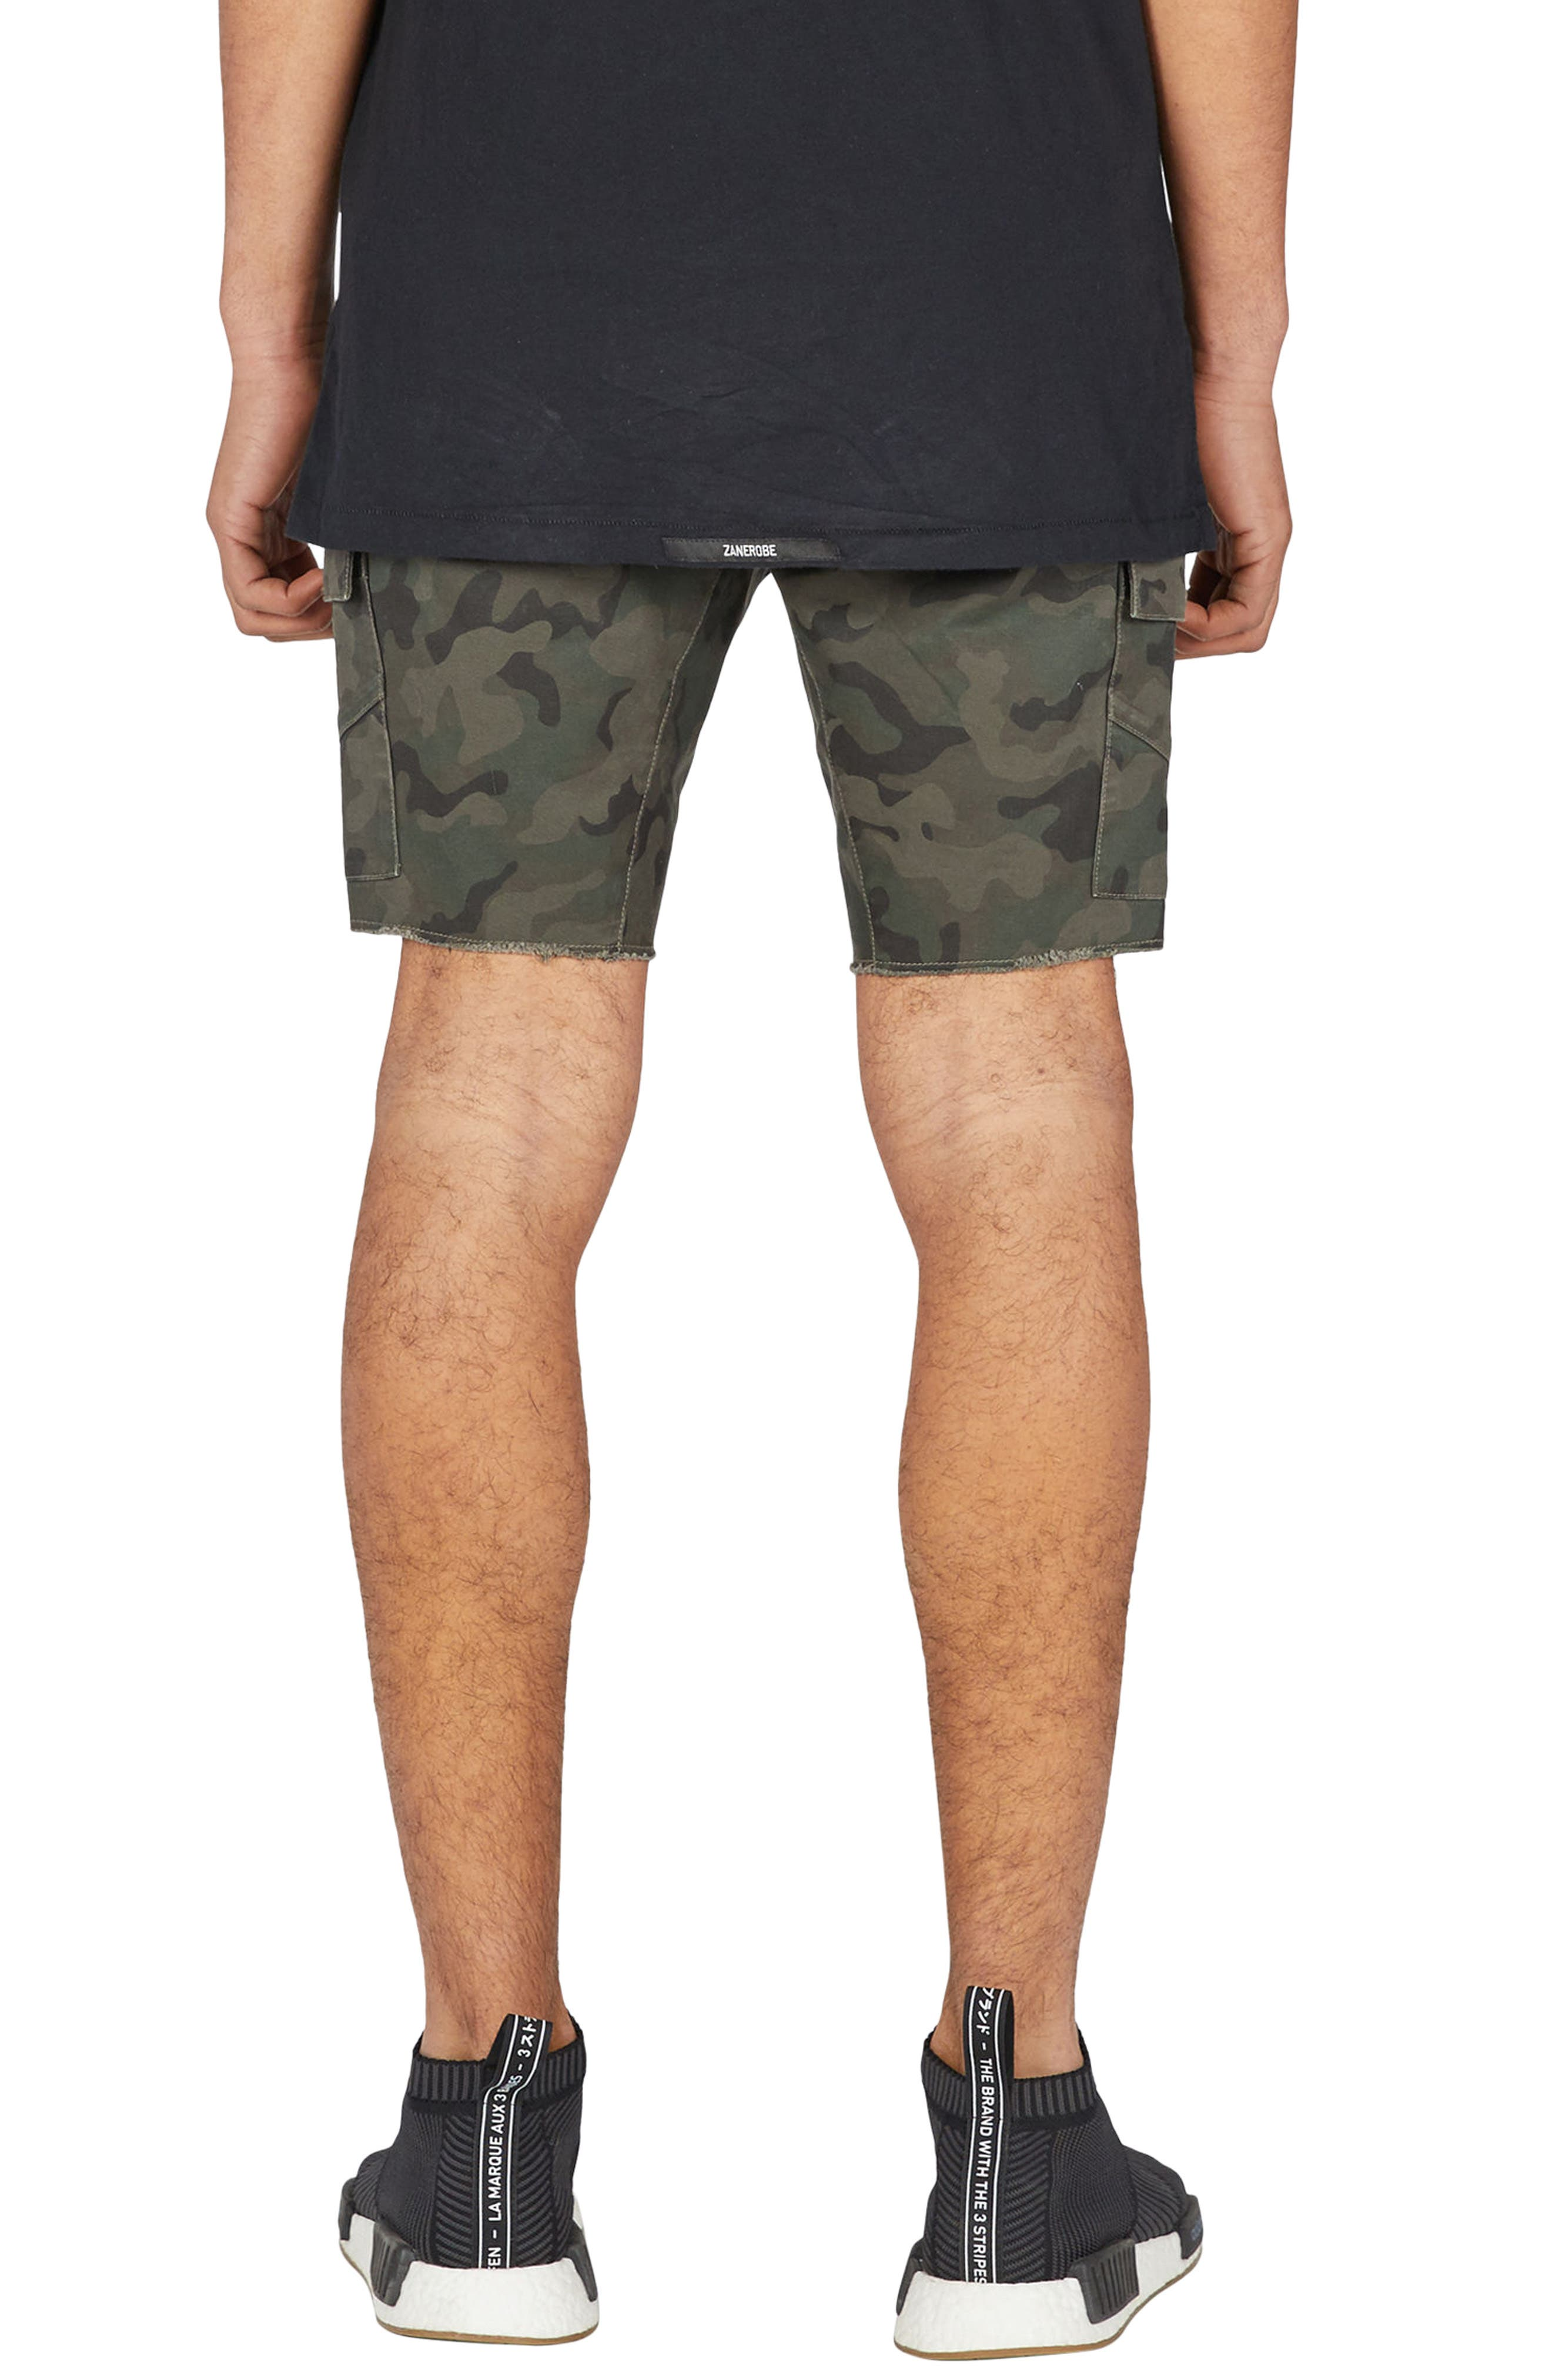 Sureshot Camo Cargo Shorts,                             Alternate thumbnail 2, color,                             302